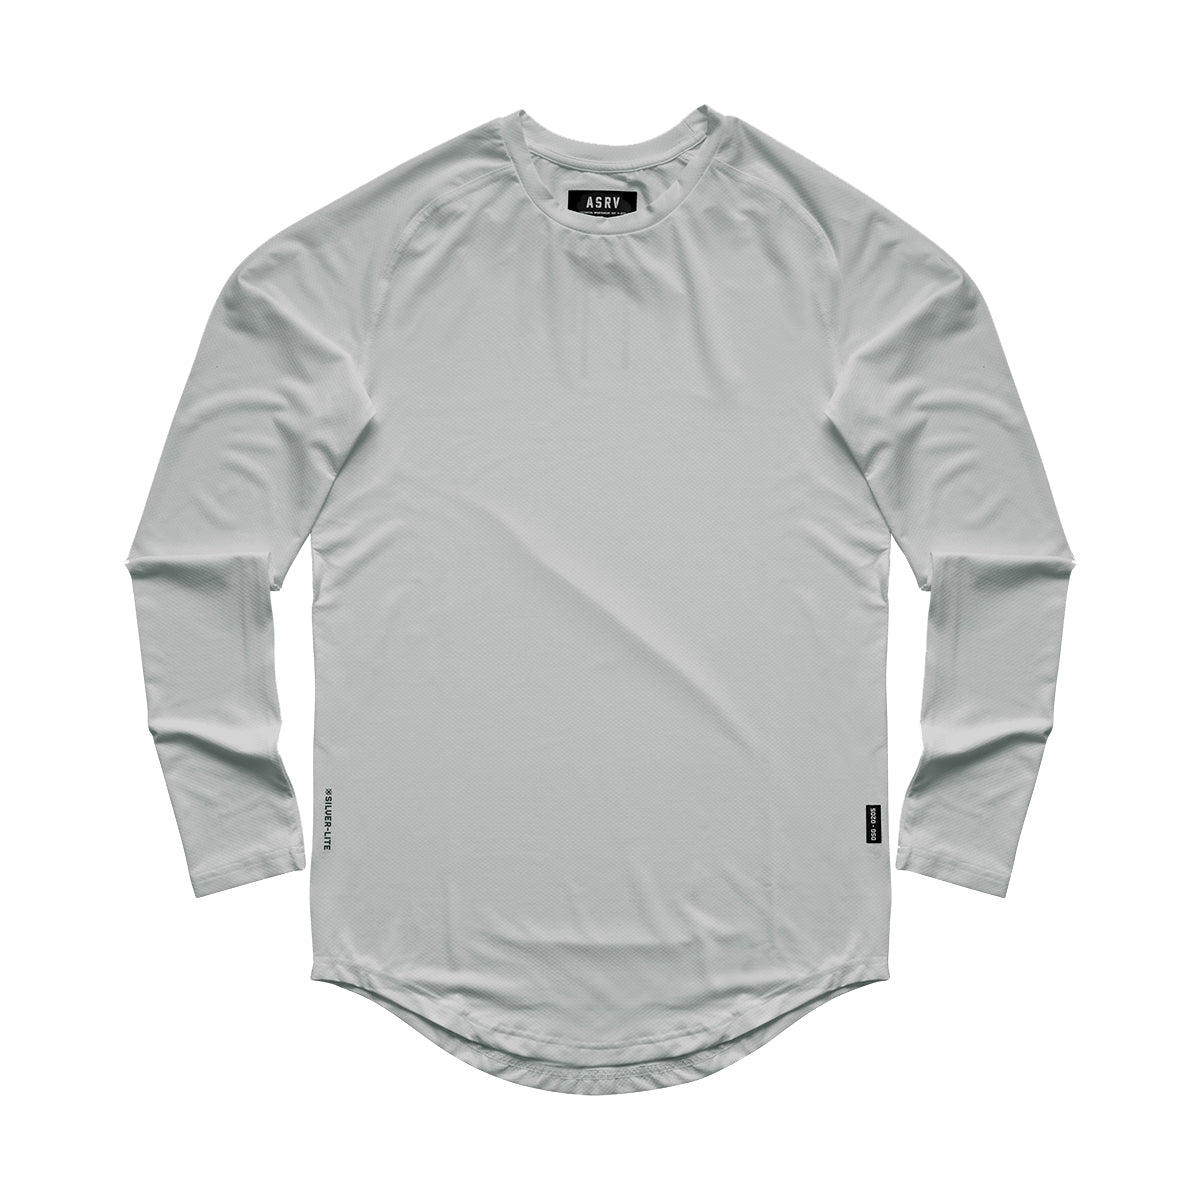 0149. Silver-Lite® Long Sleeve - Light Grey